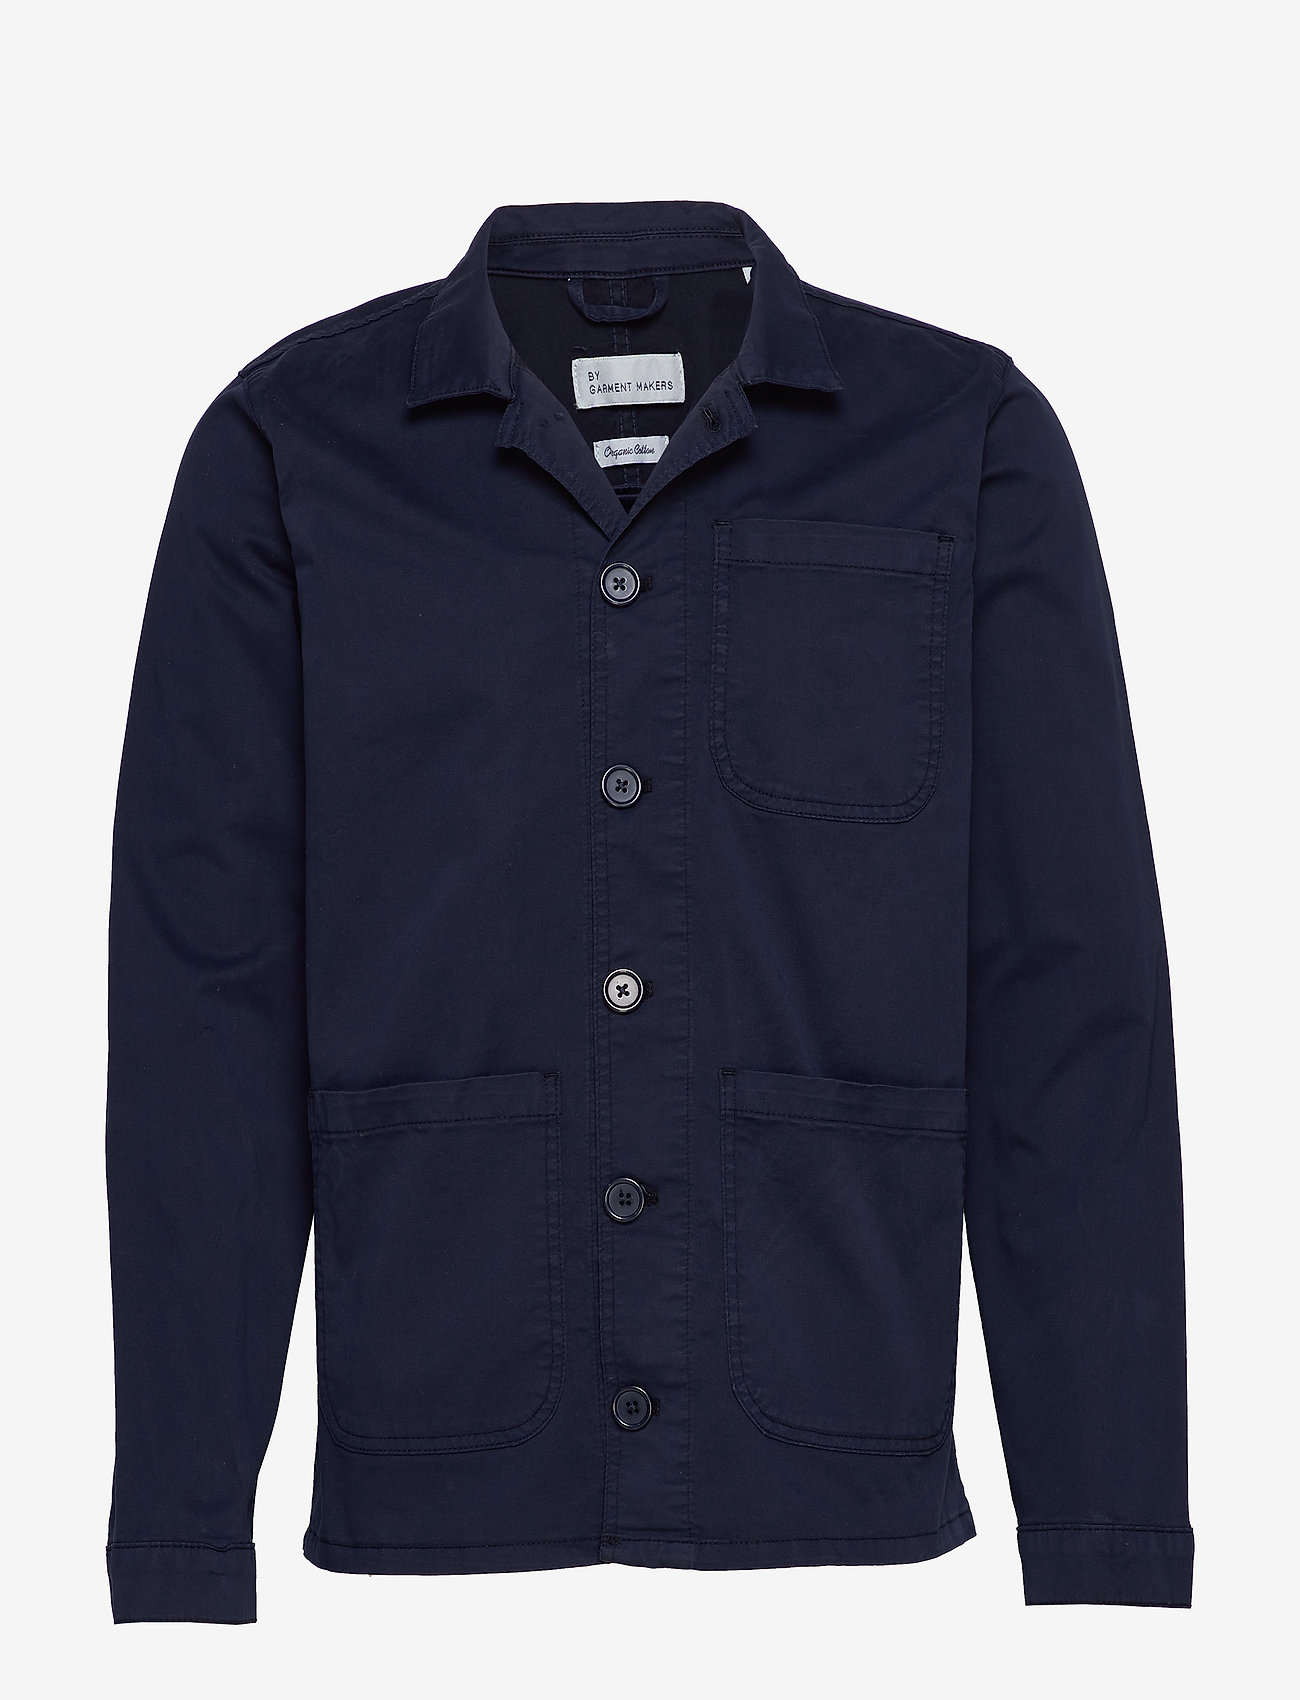 By Garment Makers - The Organic Workwear Jacket - podstawowe koszulki - navy blazer - 0